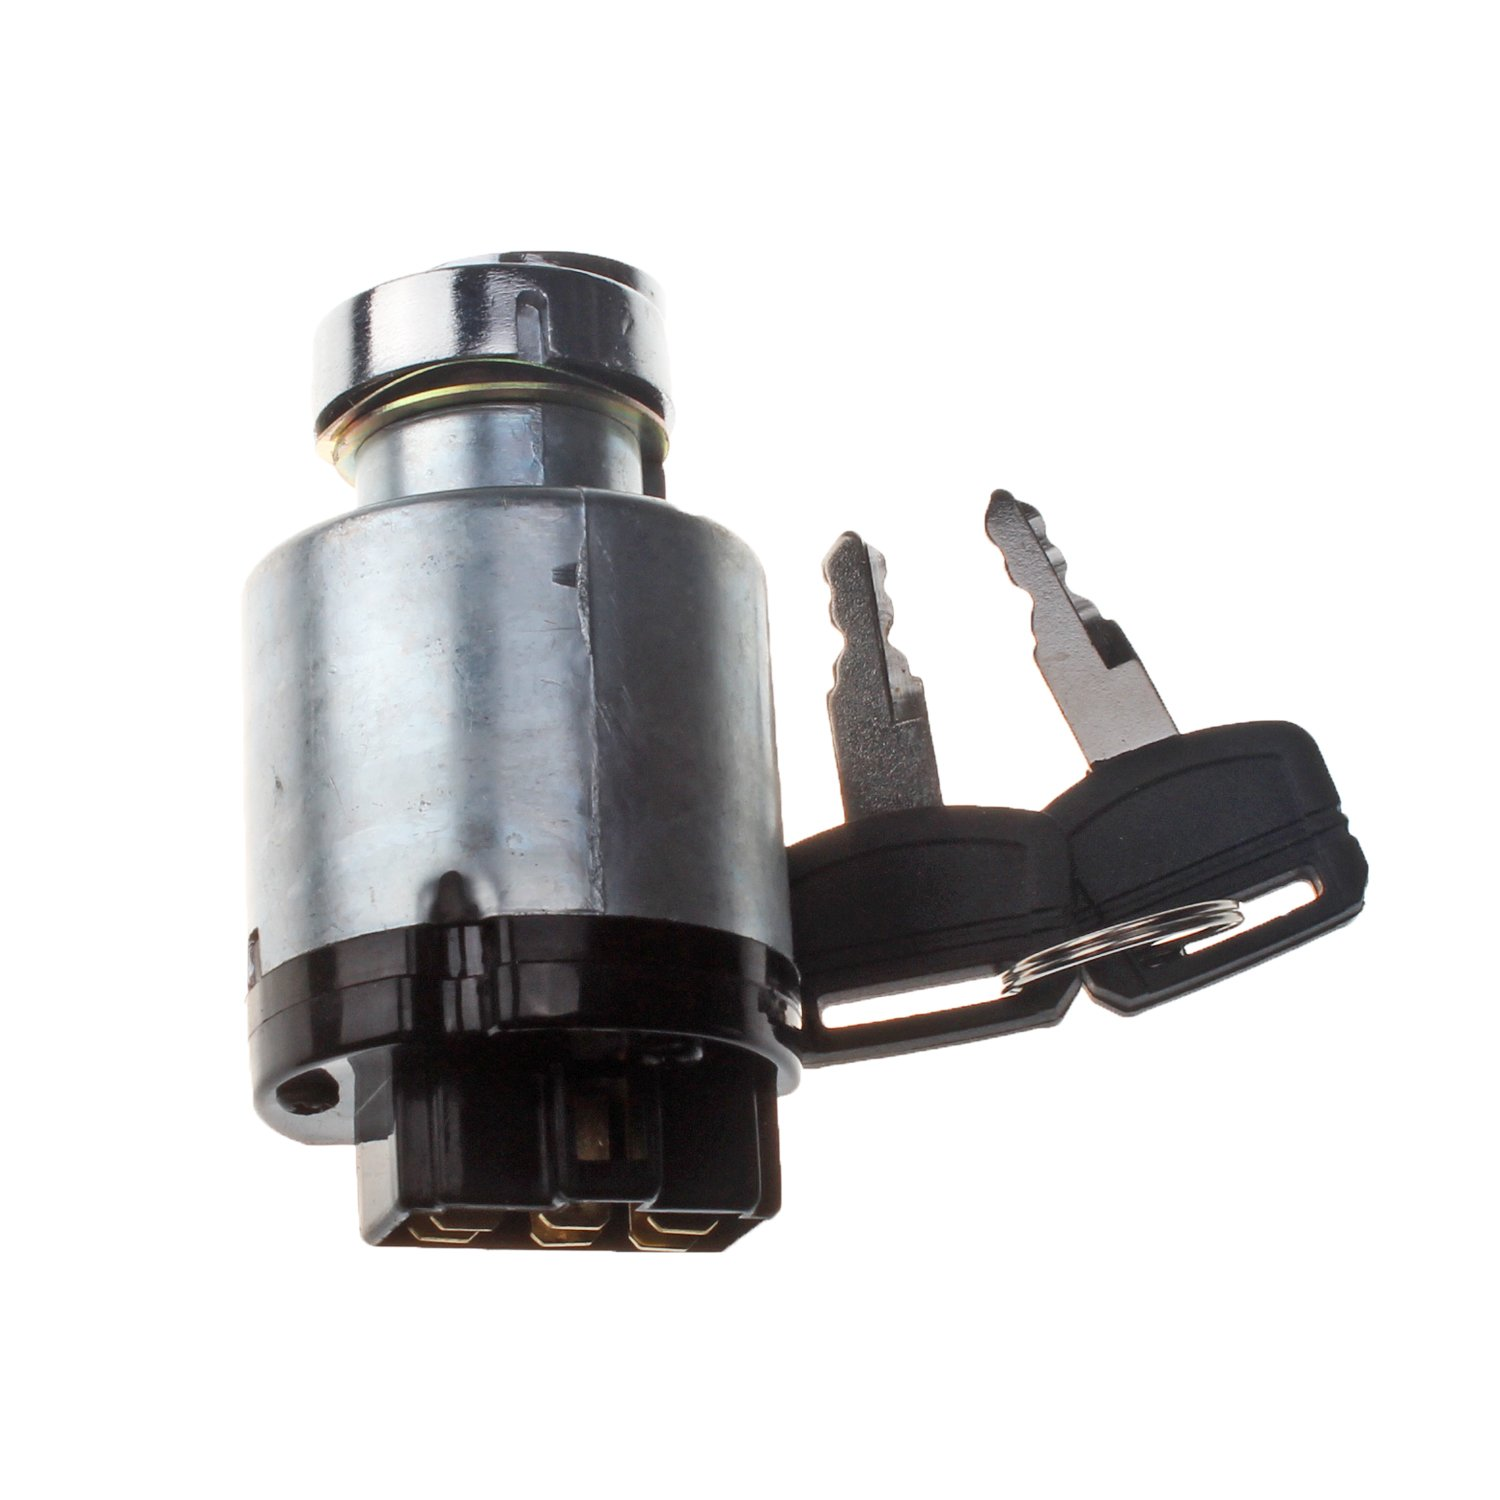 Mover Parts Ignition Switch W//2 keys 4477373 AT154992 4250350 For Hitachi John Deere